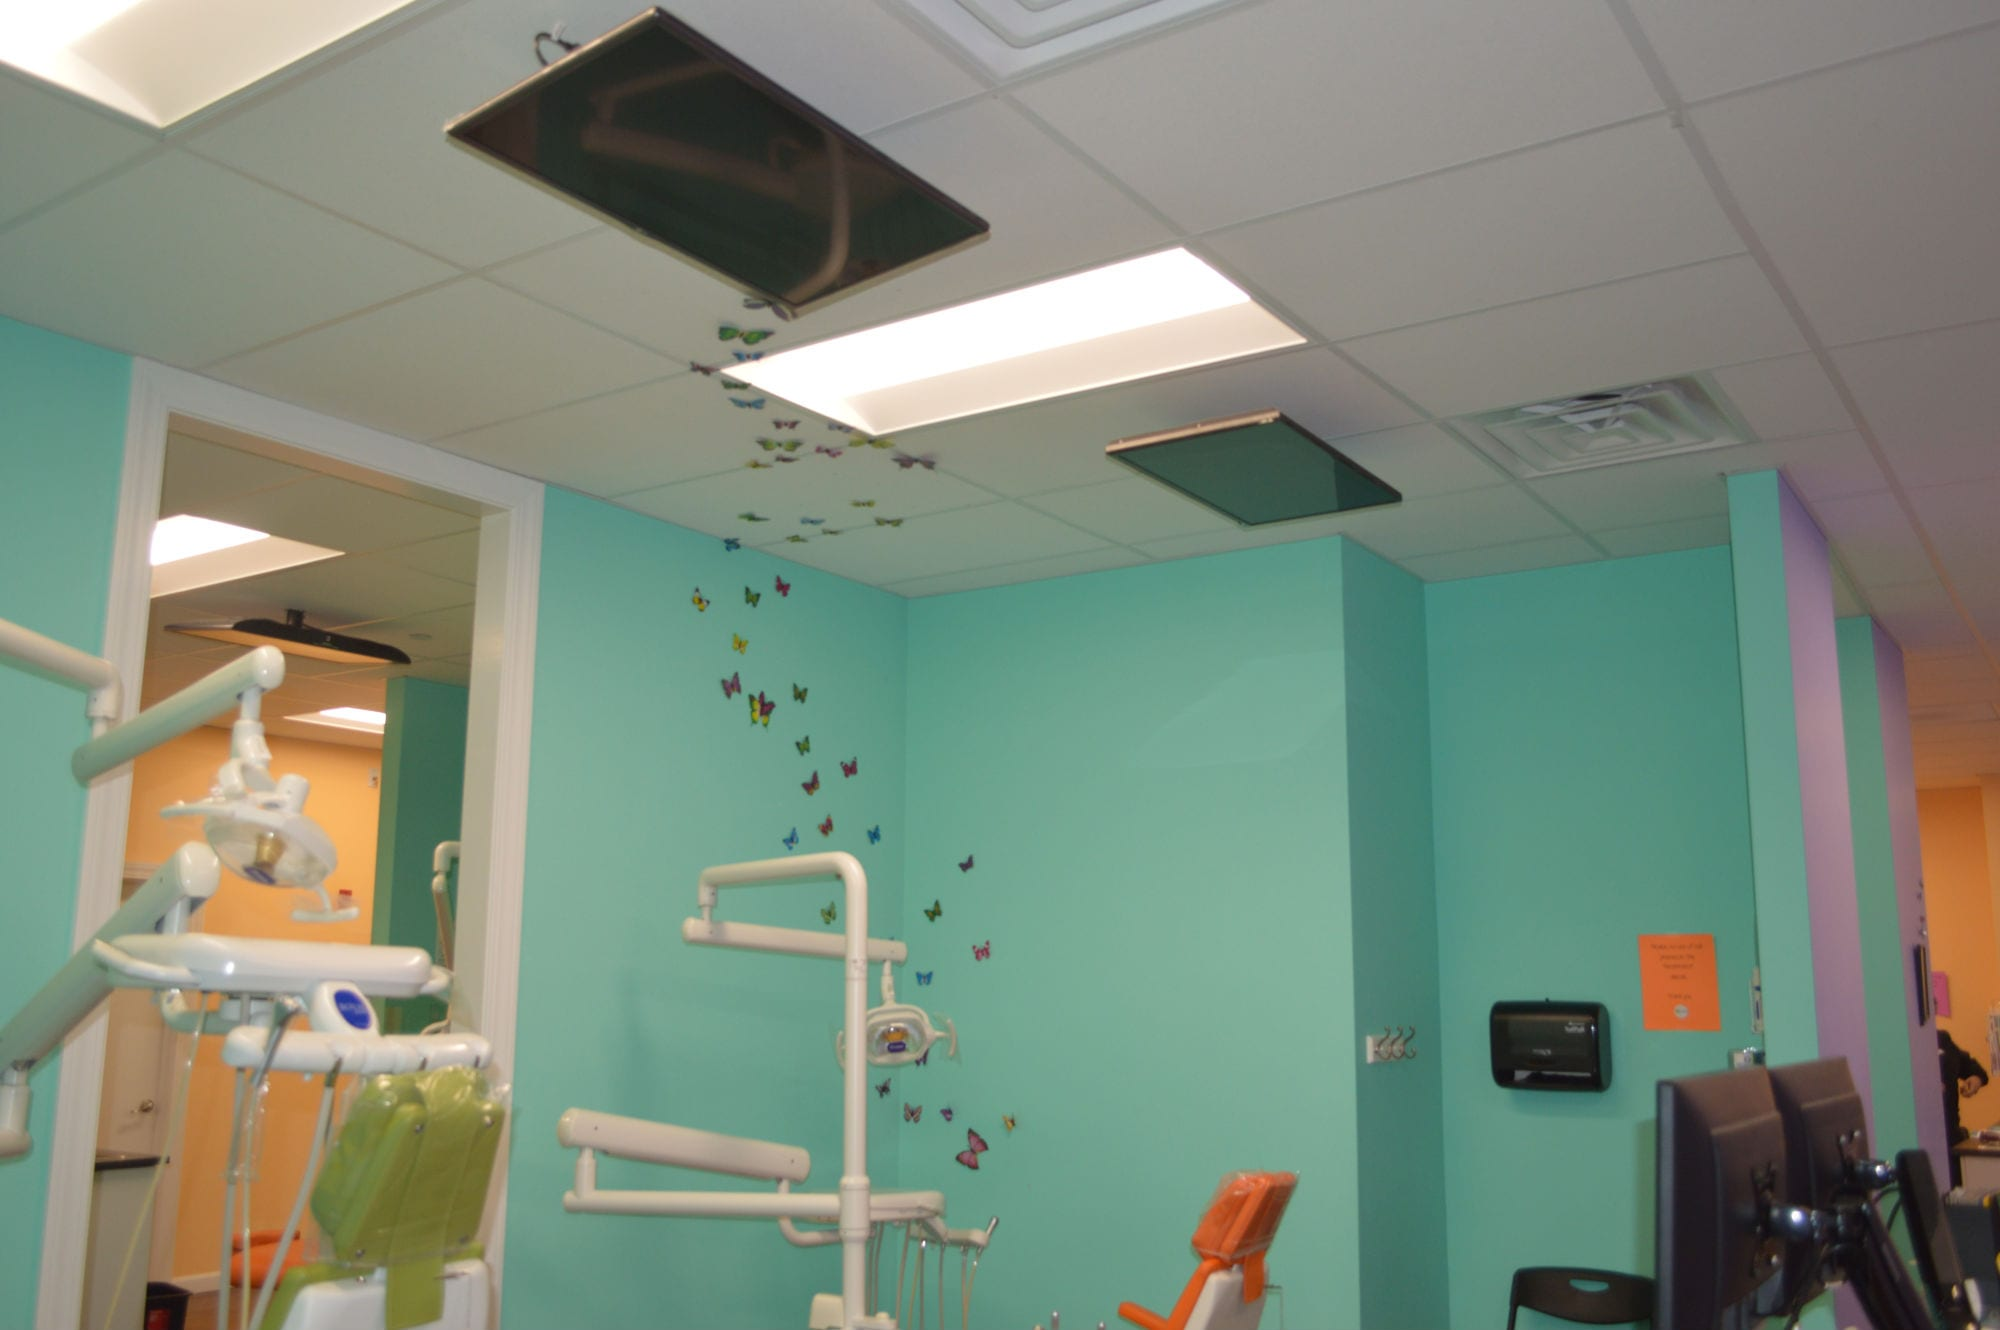 Kids Zone Dental, Oxford MA – Commercial HVAC Maintenance Project